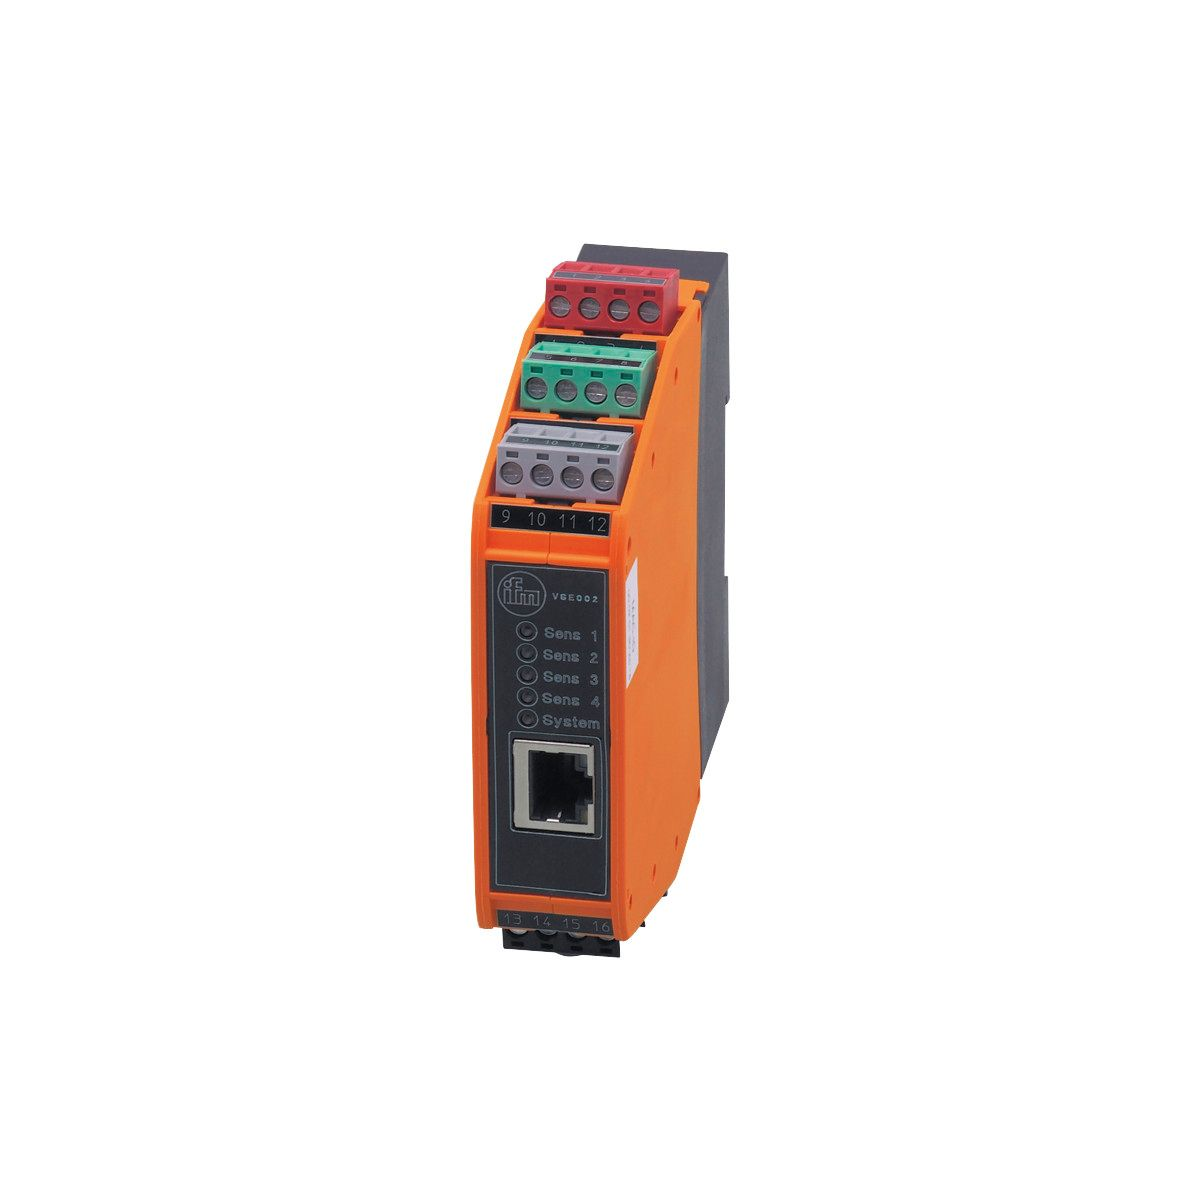 Vse002 Diagnostic Electronics For Vibration Sensors Ifm Electronic Buy Integrated Analog And Digital Circuits Systems 2